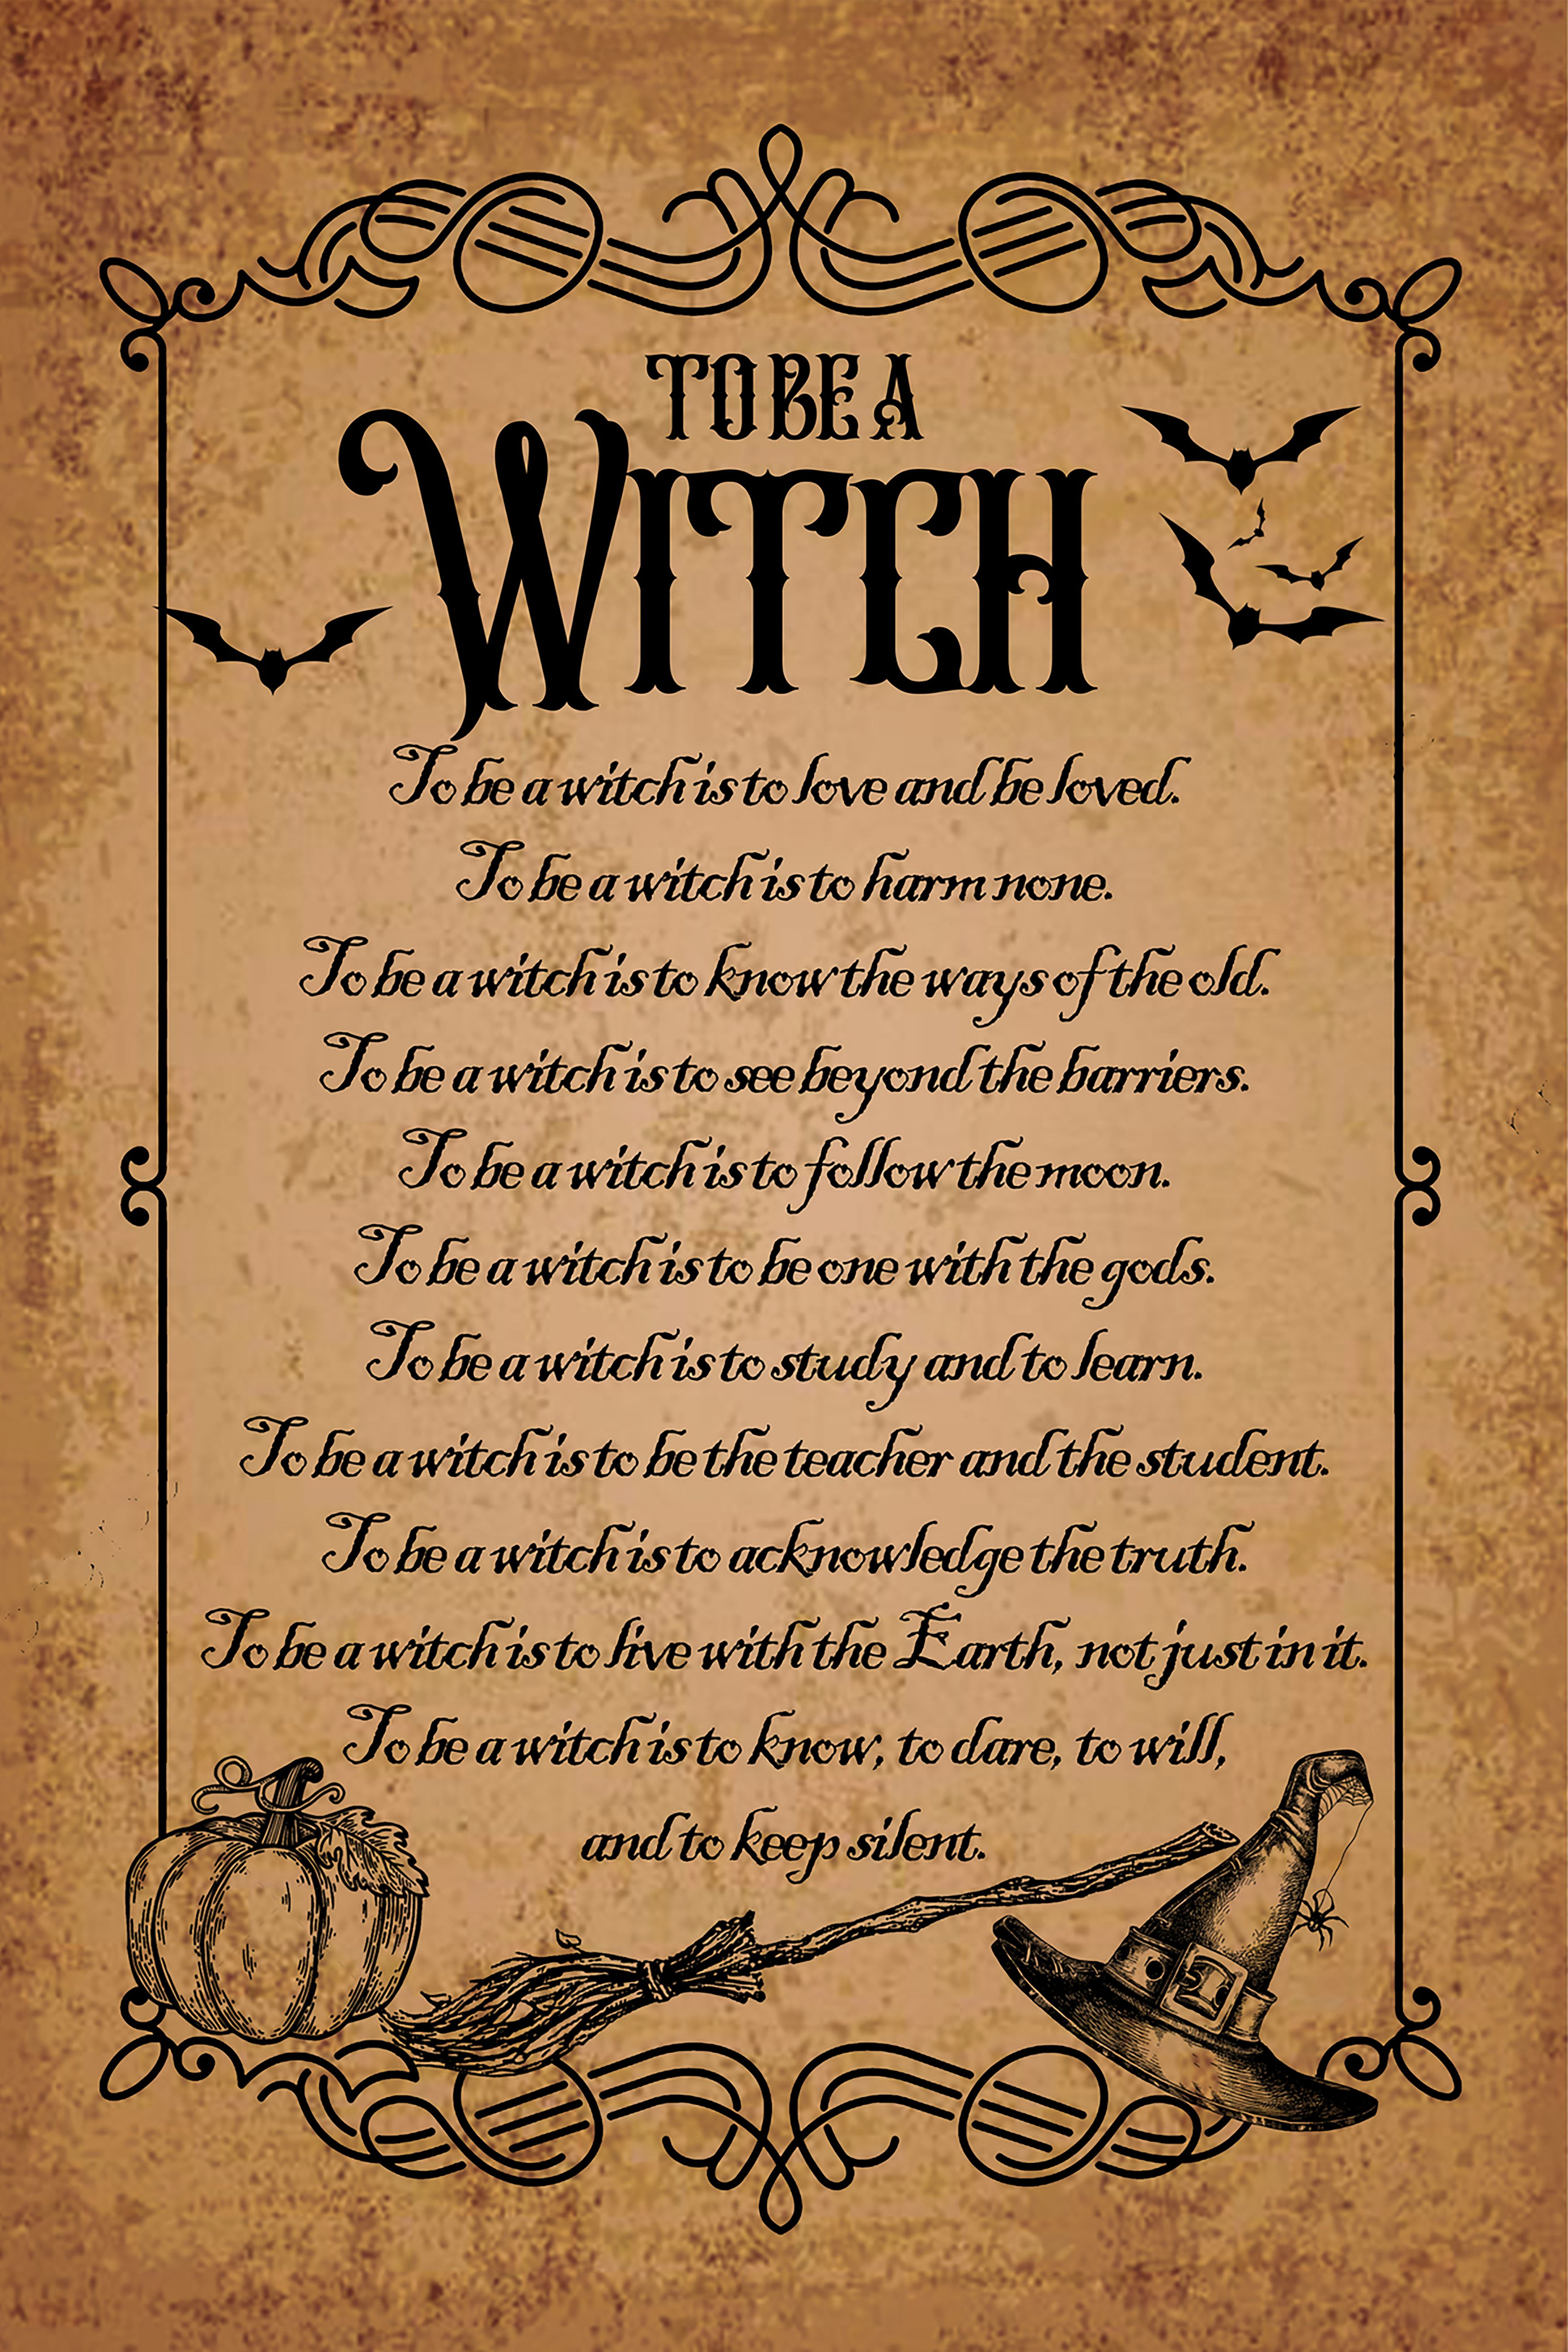 Halloween Witchs Grimoire Spell Book Cover Aged Background Diy Digital Download Vintage Halloween Spook Vintage Halloween Witch Vintage Halloween Collage Sheet